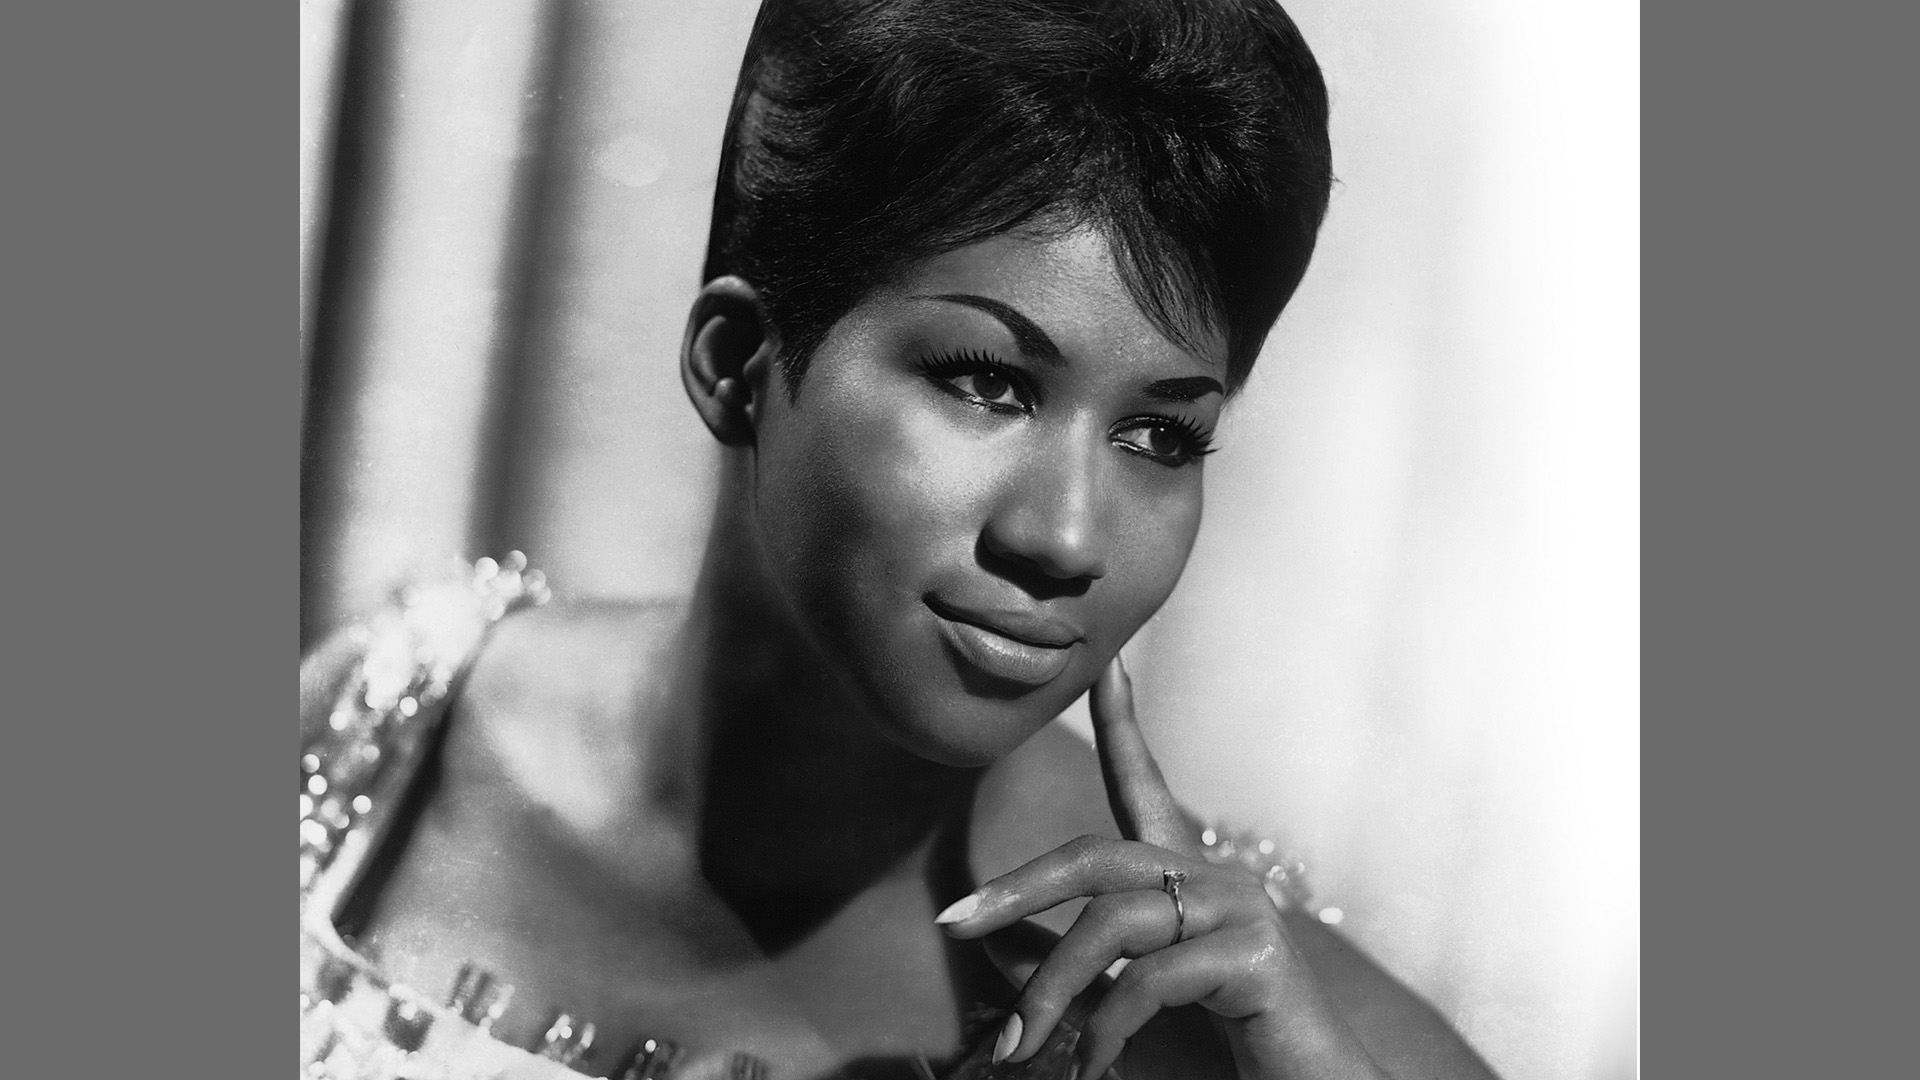 ARETHA! QUEEN OF SOUL - Join Us As We Remember Her - Tonight at 8:30 p.m.